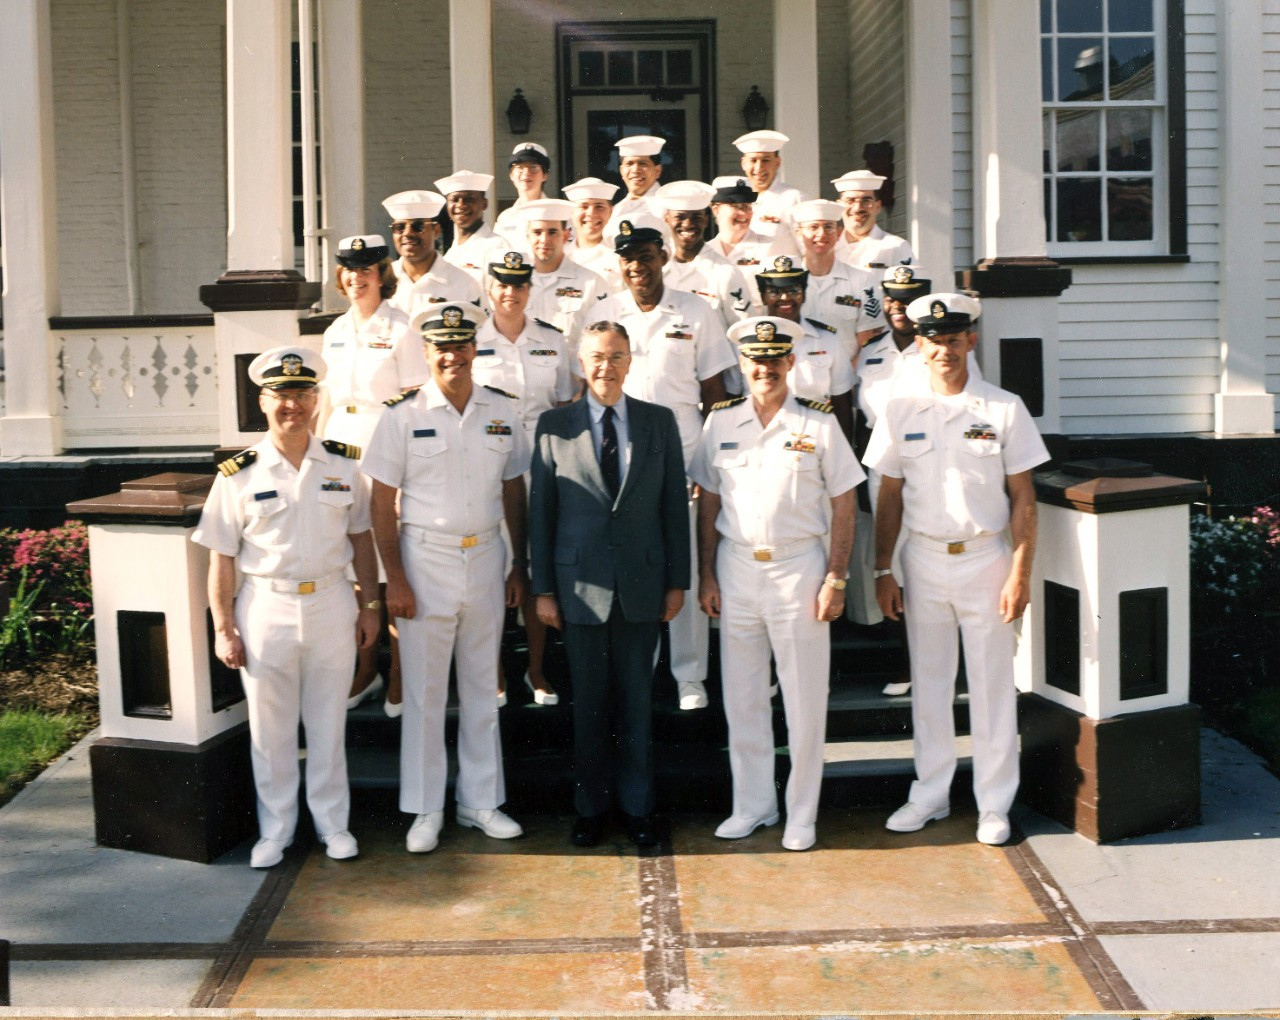 Dr. Dean Allard pictured (center) on the Washington Navy Yard in an undated photo with several Sailors in their dress whites. Dr. Allard was the Naval History Director from 1989-1995.